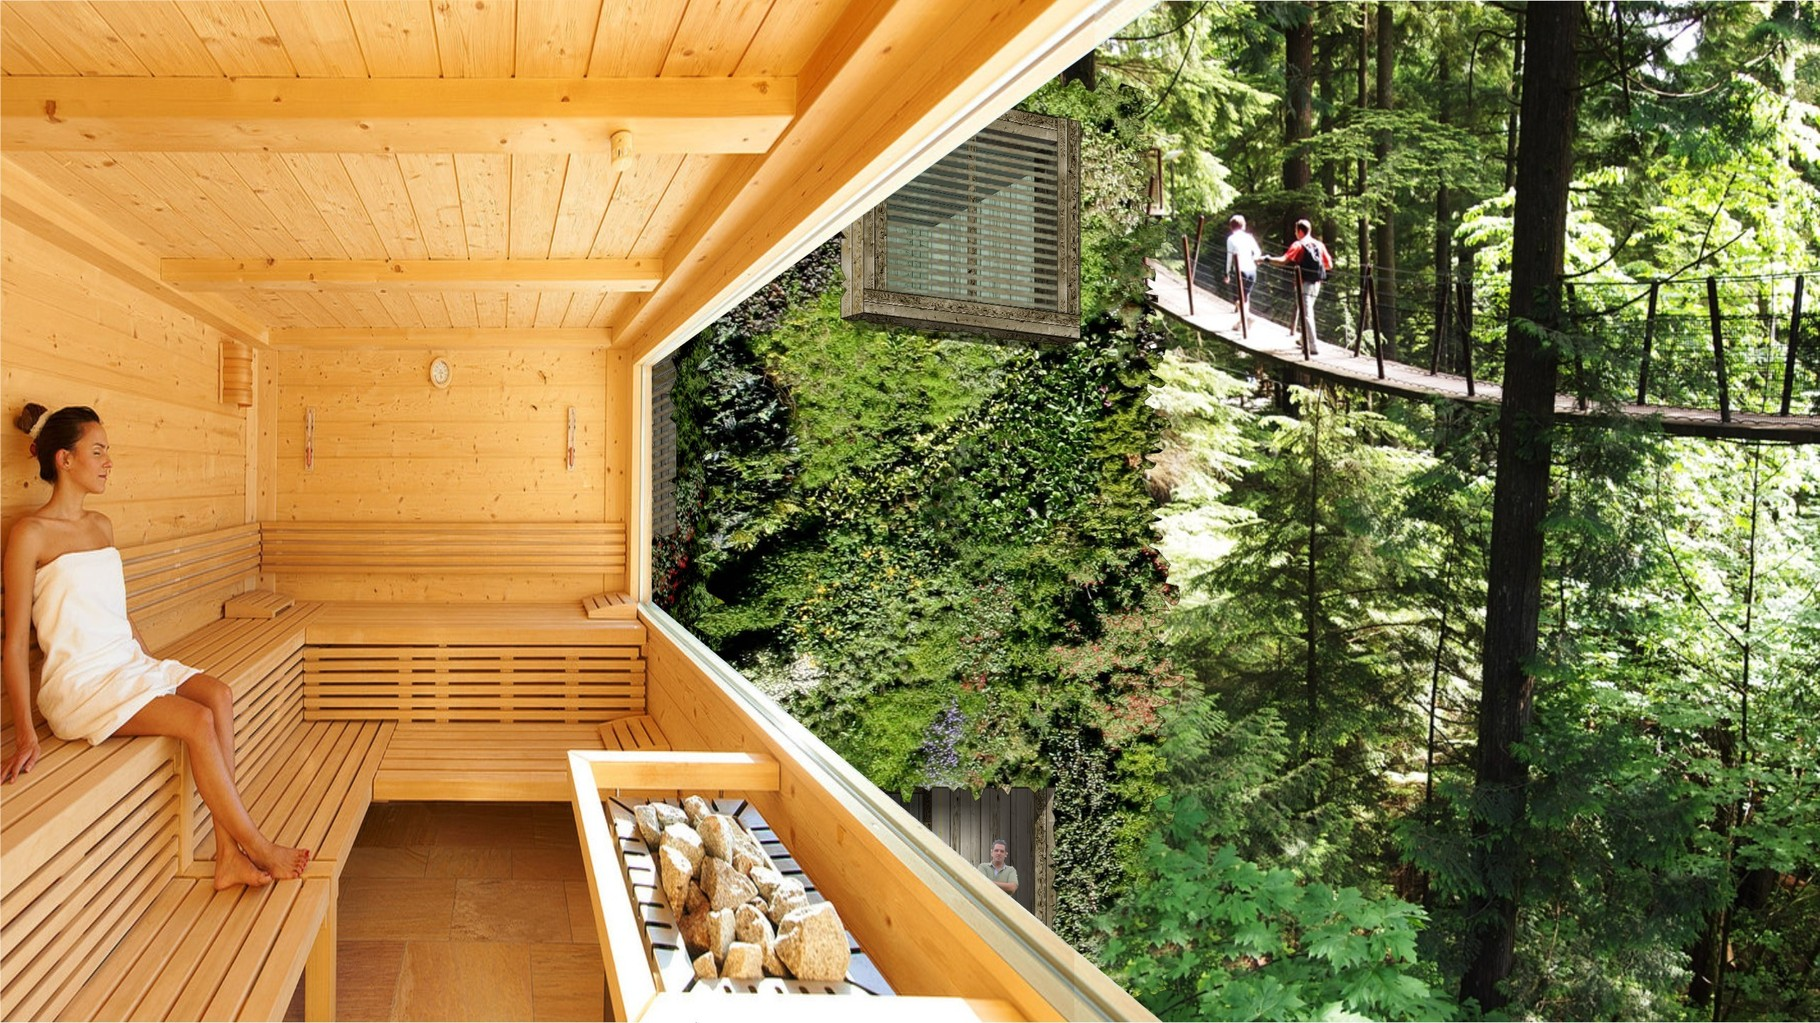 Visual OAS1S™: Enjoy a treetop trekking from your lodge to an organic restaurant or spa treehouse.